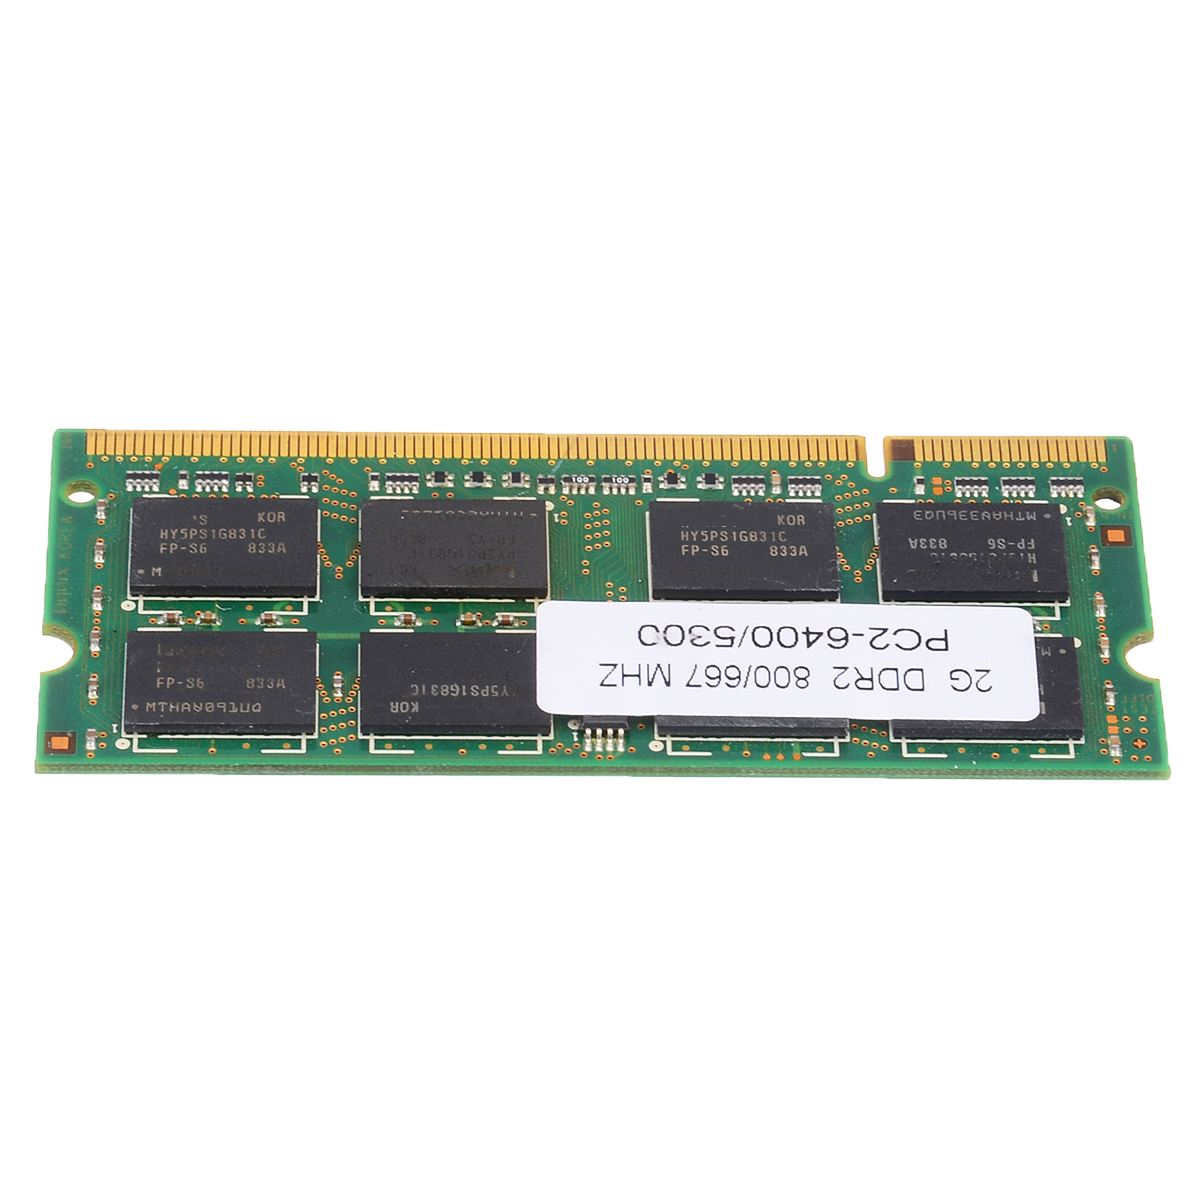 Laptop Memory DDR2 With 2GB PC2 6400/5300 800/667MHZ Low-Density 11